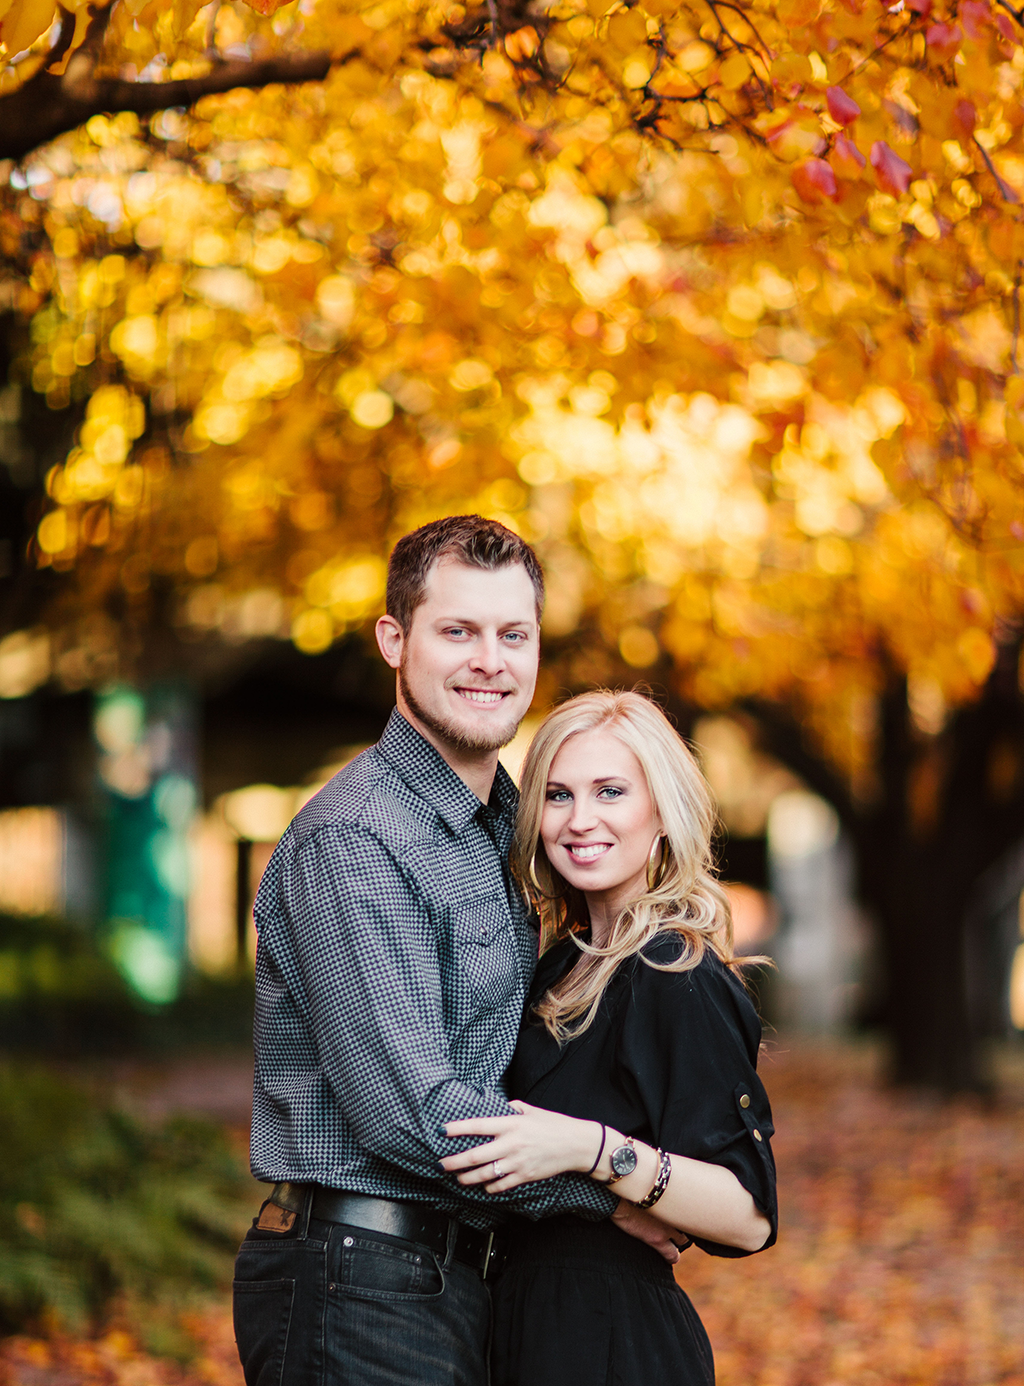 Brooke-&-Chip's-Engagement_-Kristen-Curette-Photography-1125-Edit